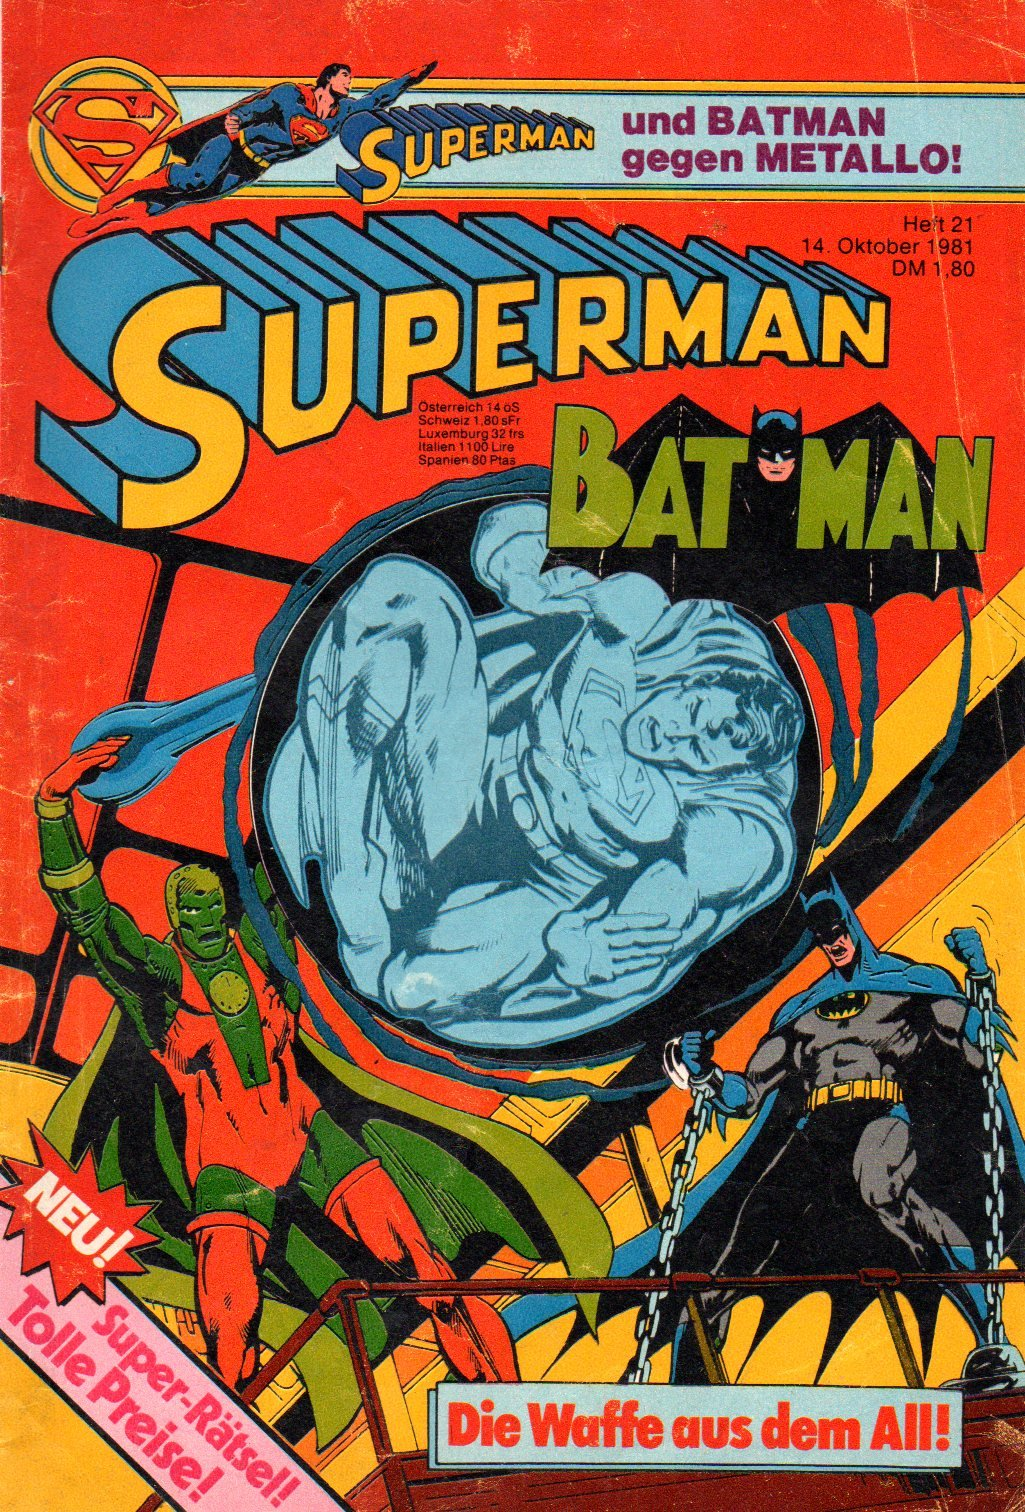 Superman Batman Comic Großband # 21 - Ehapa Verlag 1981 (Superman) Comic – 1981 DC Comics B005WAMQ32 Belletristik - Comic Cartoon